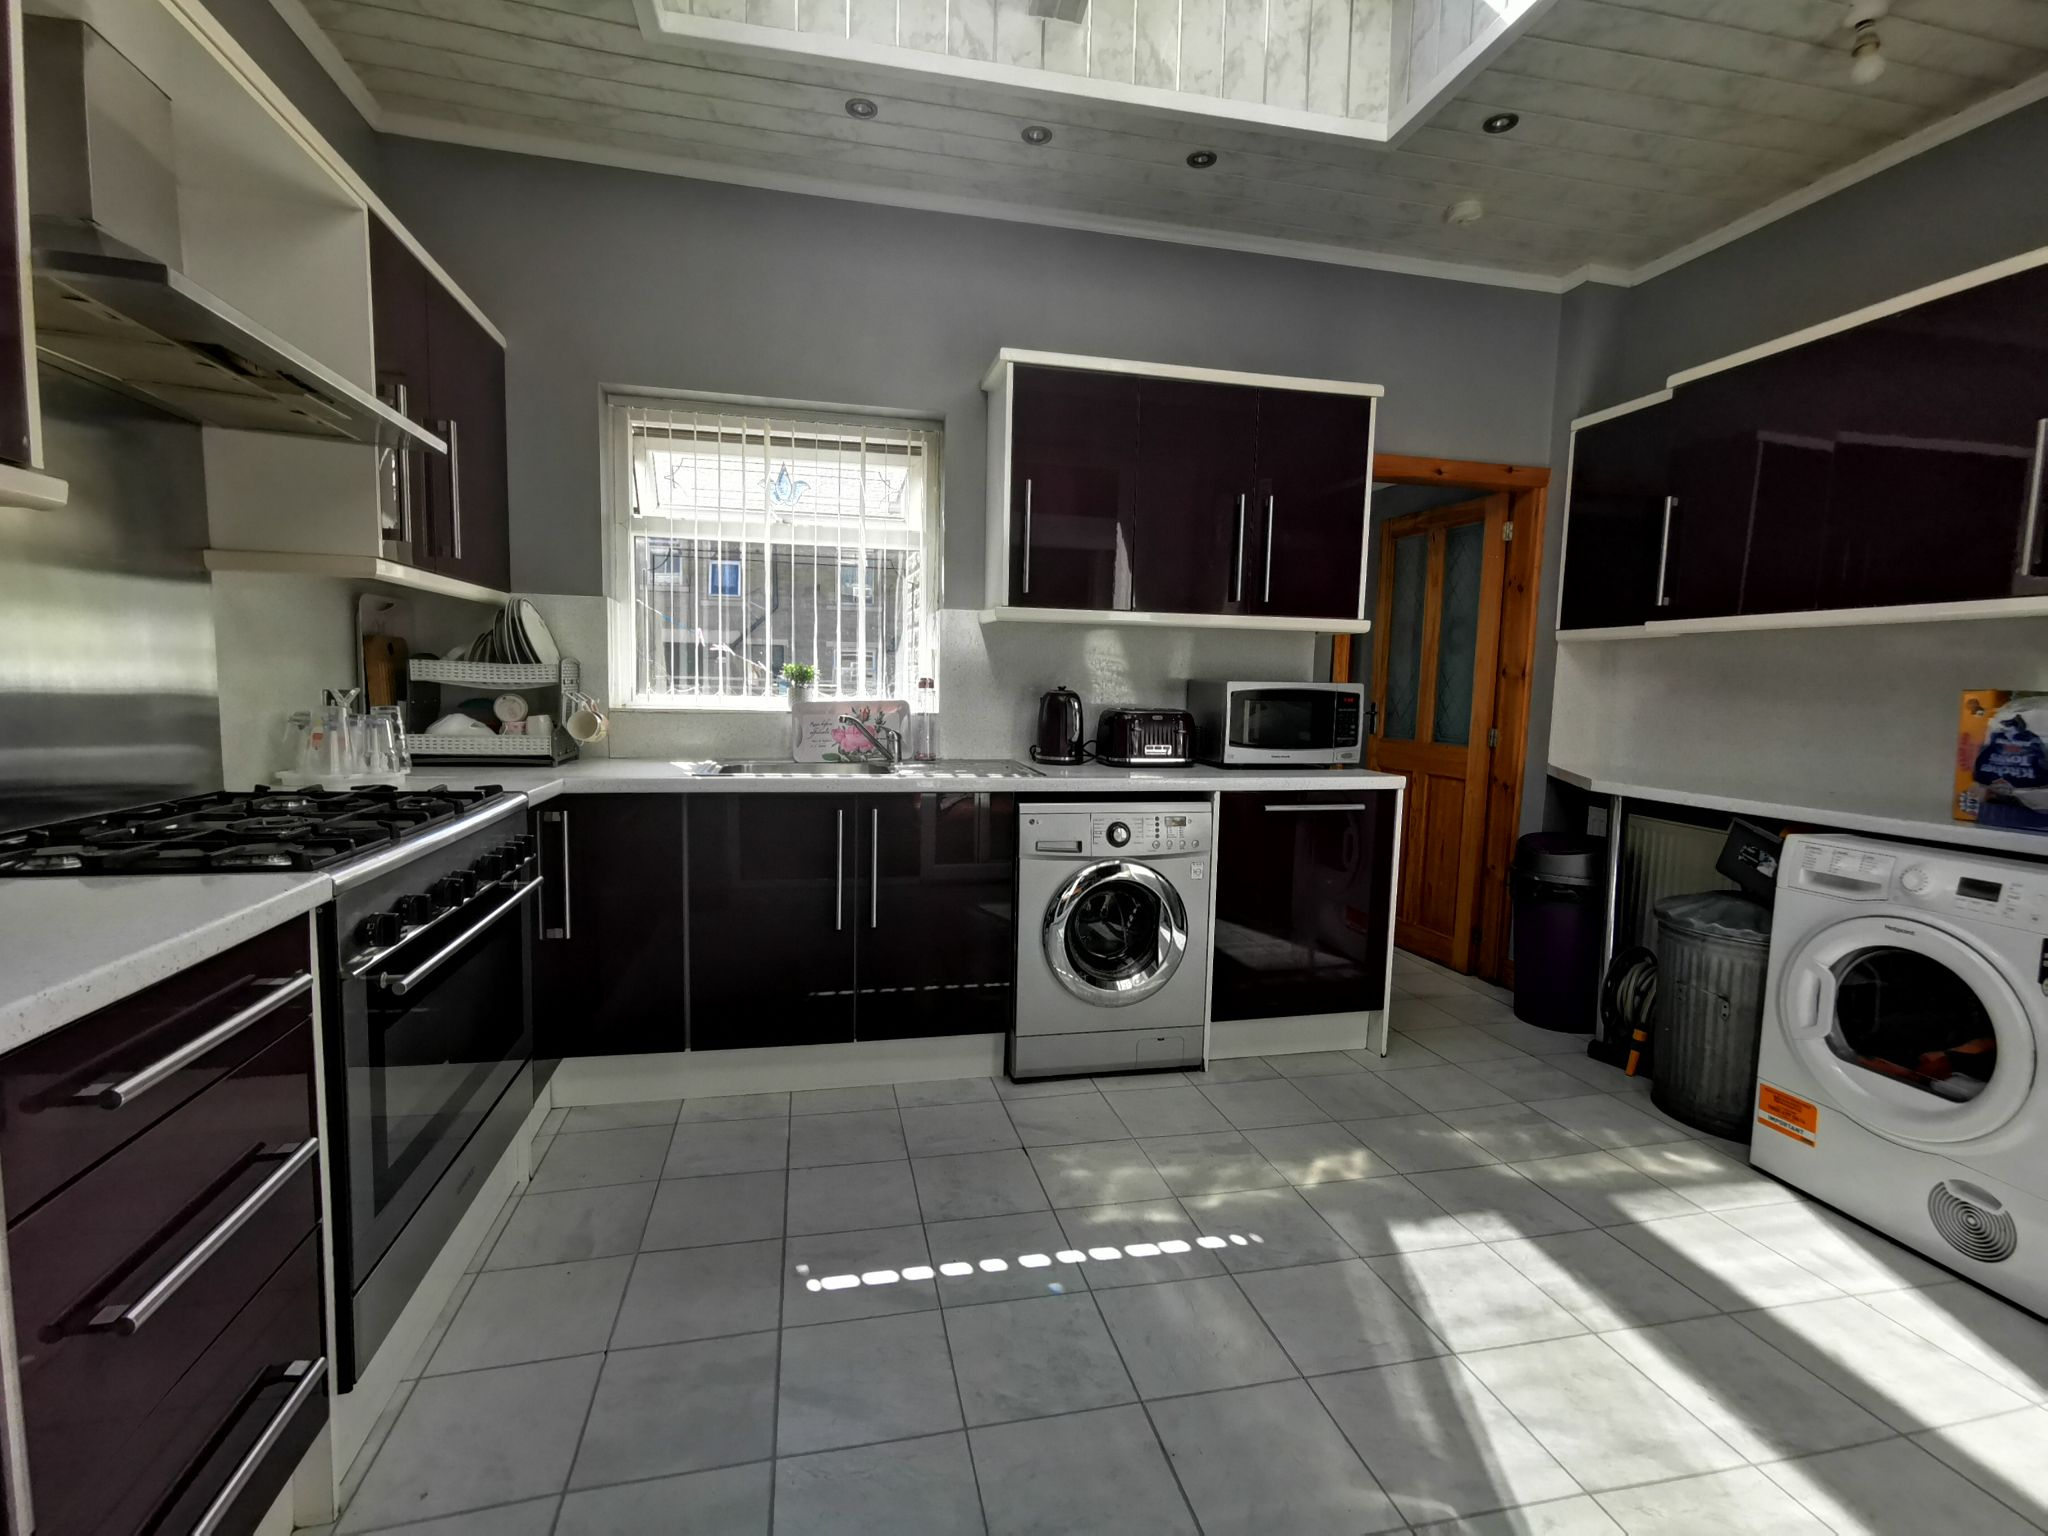 4 bedroom mid terraced house For Sale in Bradford - Photograph 4.